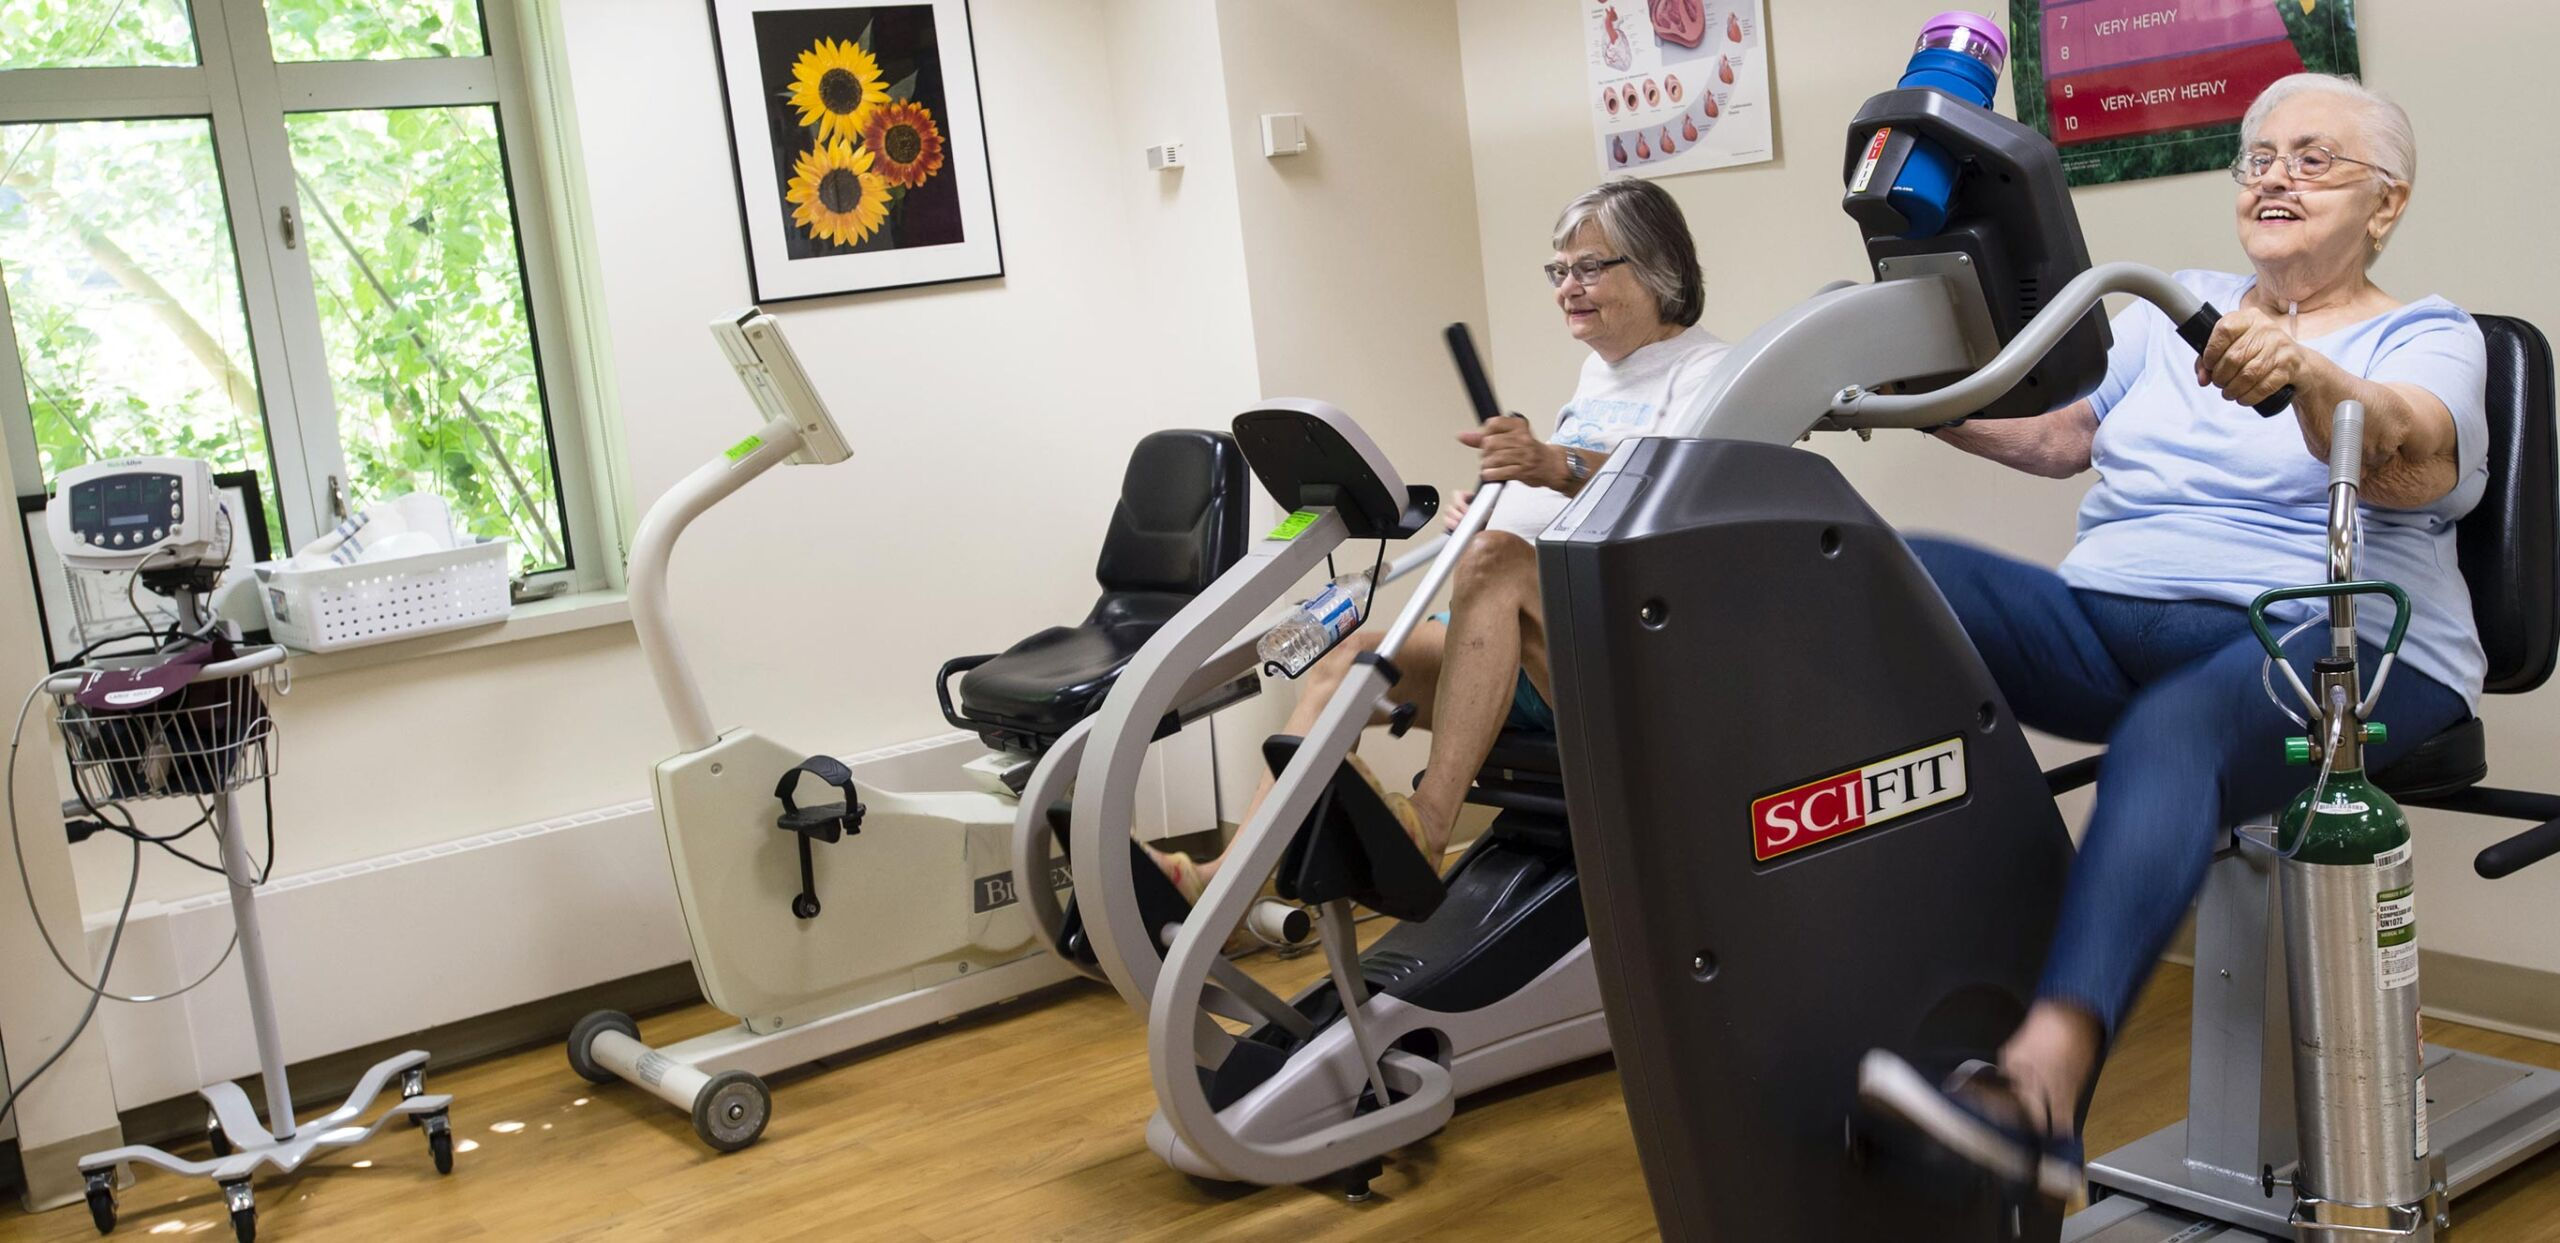 Two women using stationary exercise equipment in the Cardiopulmonary Rehabilitation Center at Cooley Dickinson Hospital, Northampton, MA 01060.